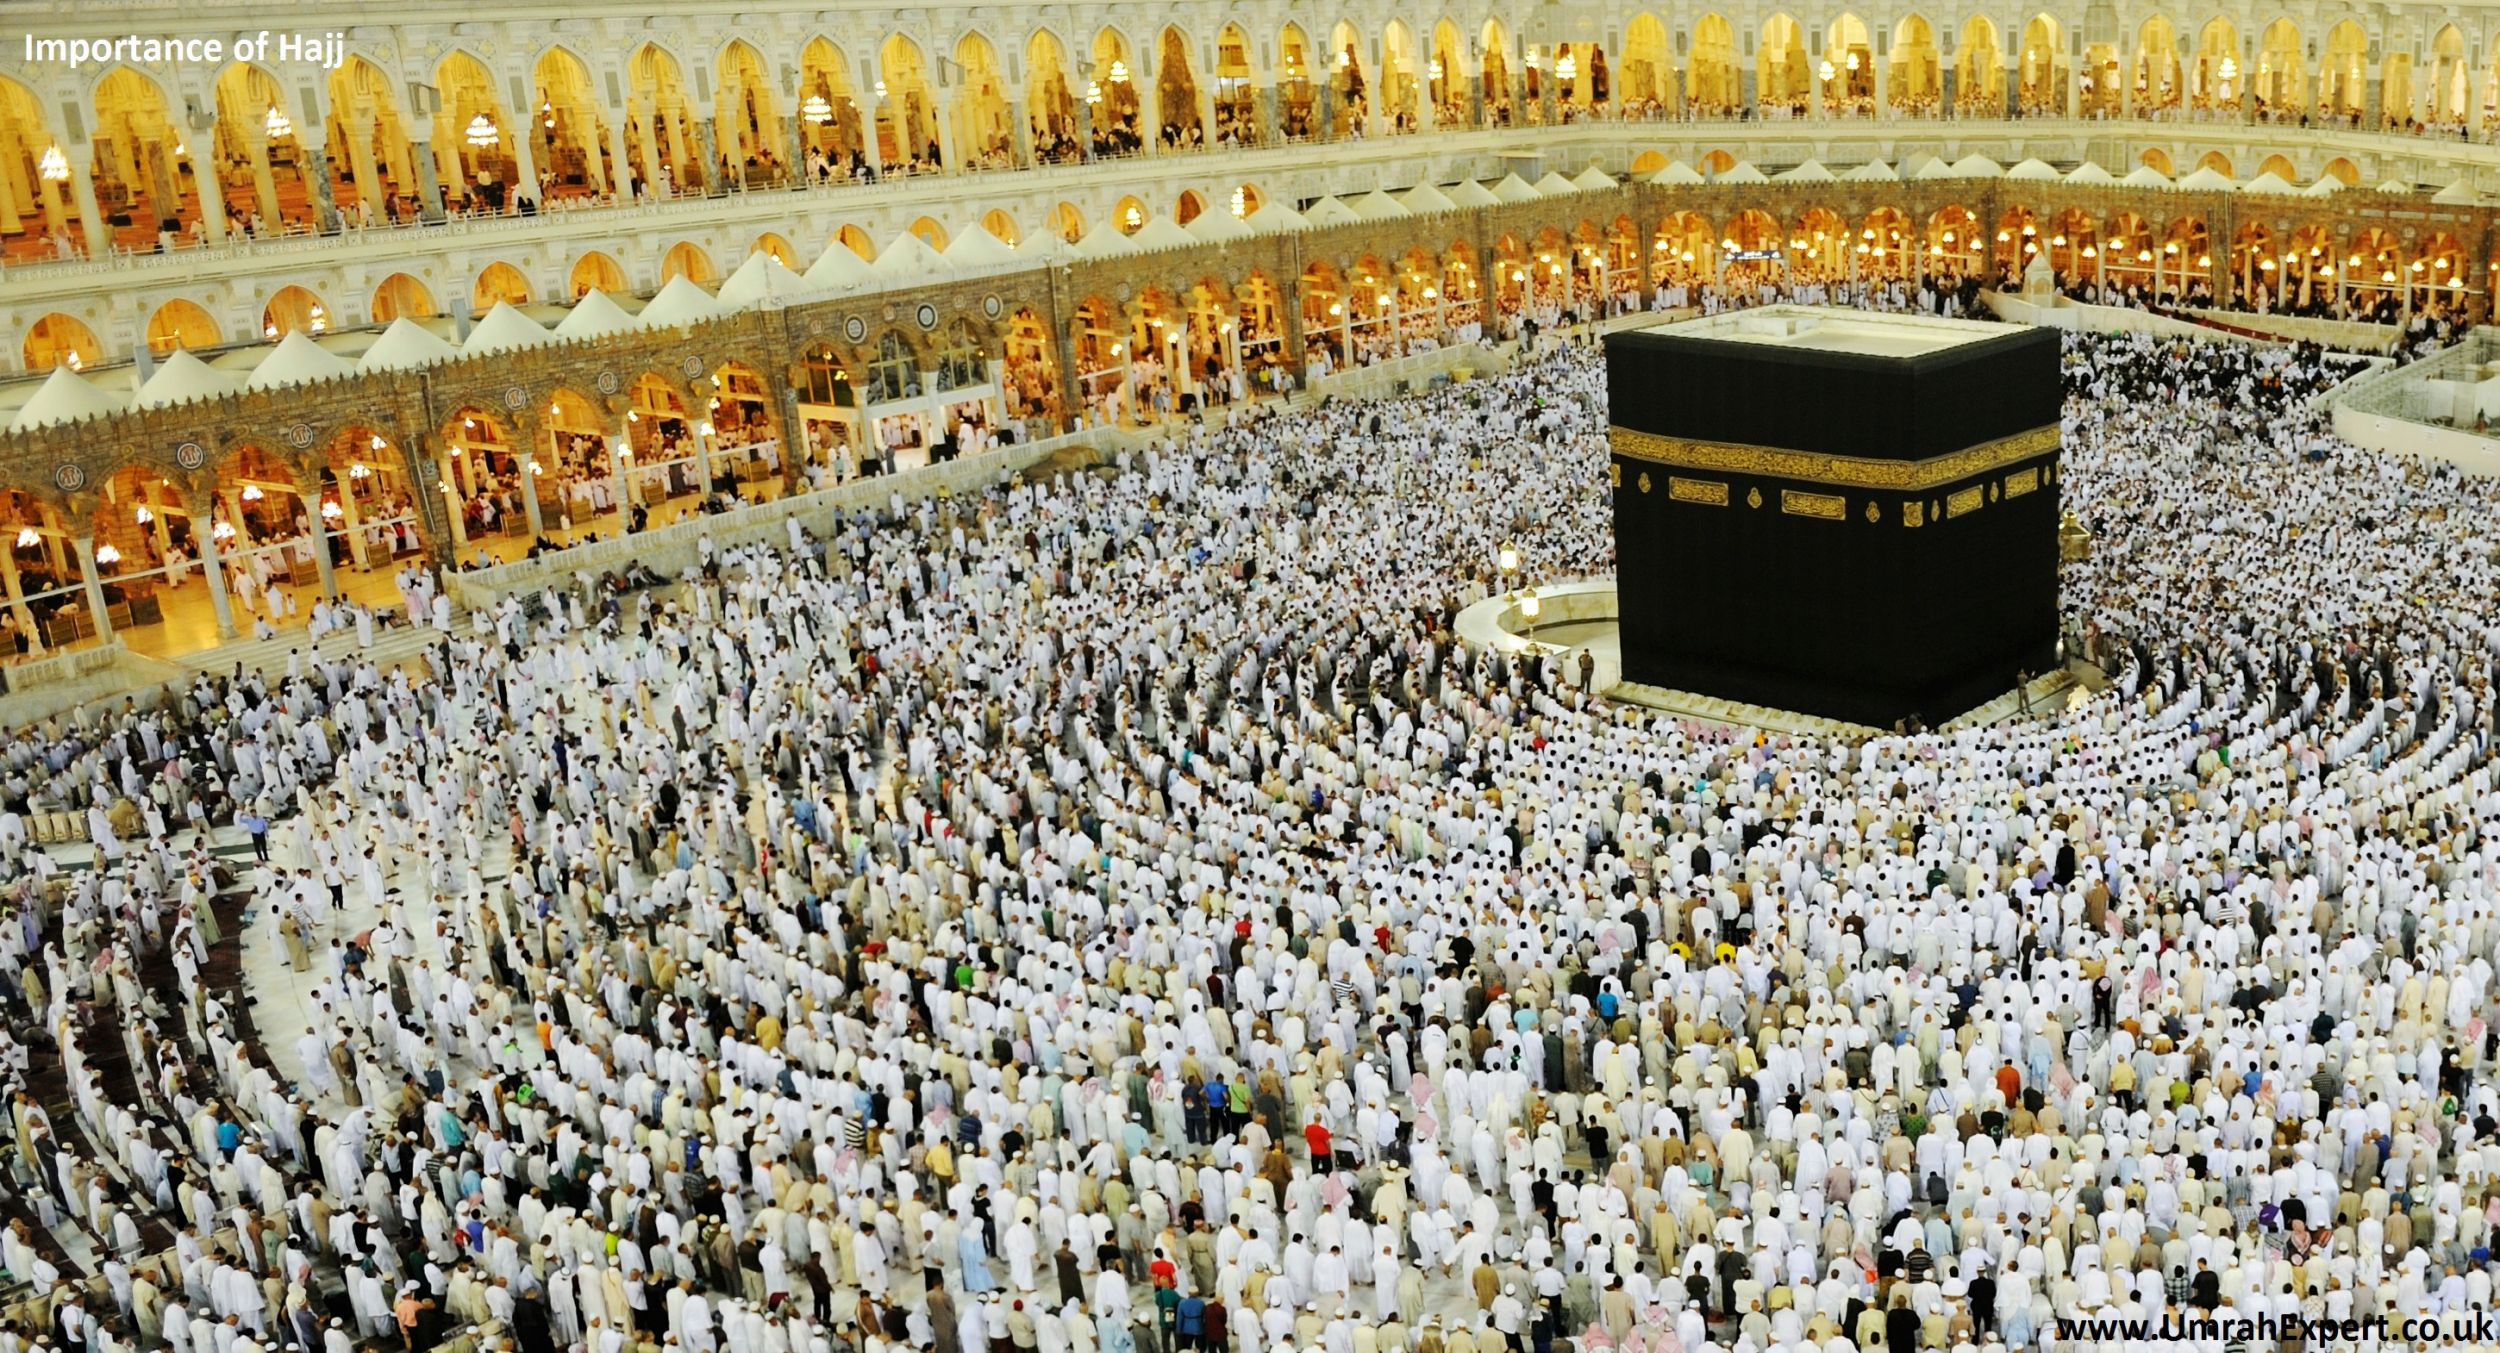 Hajj Importance for Muslims